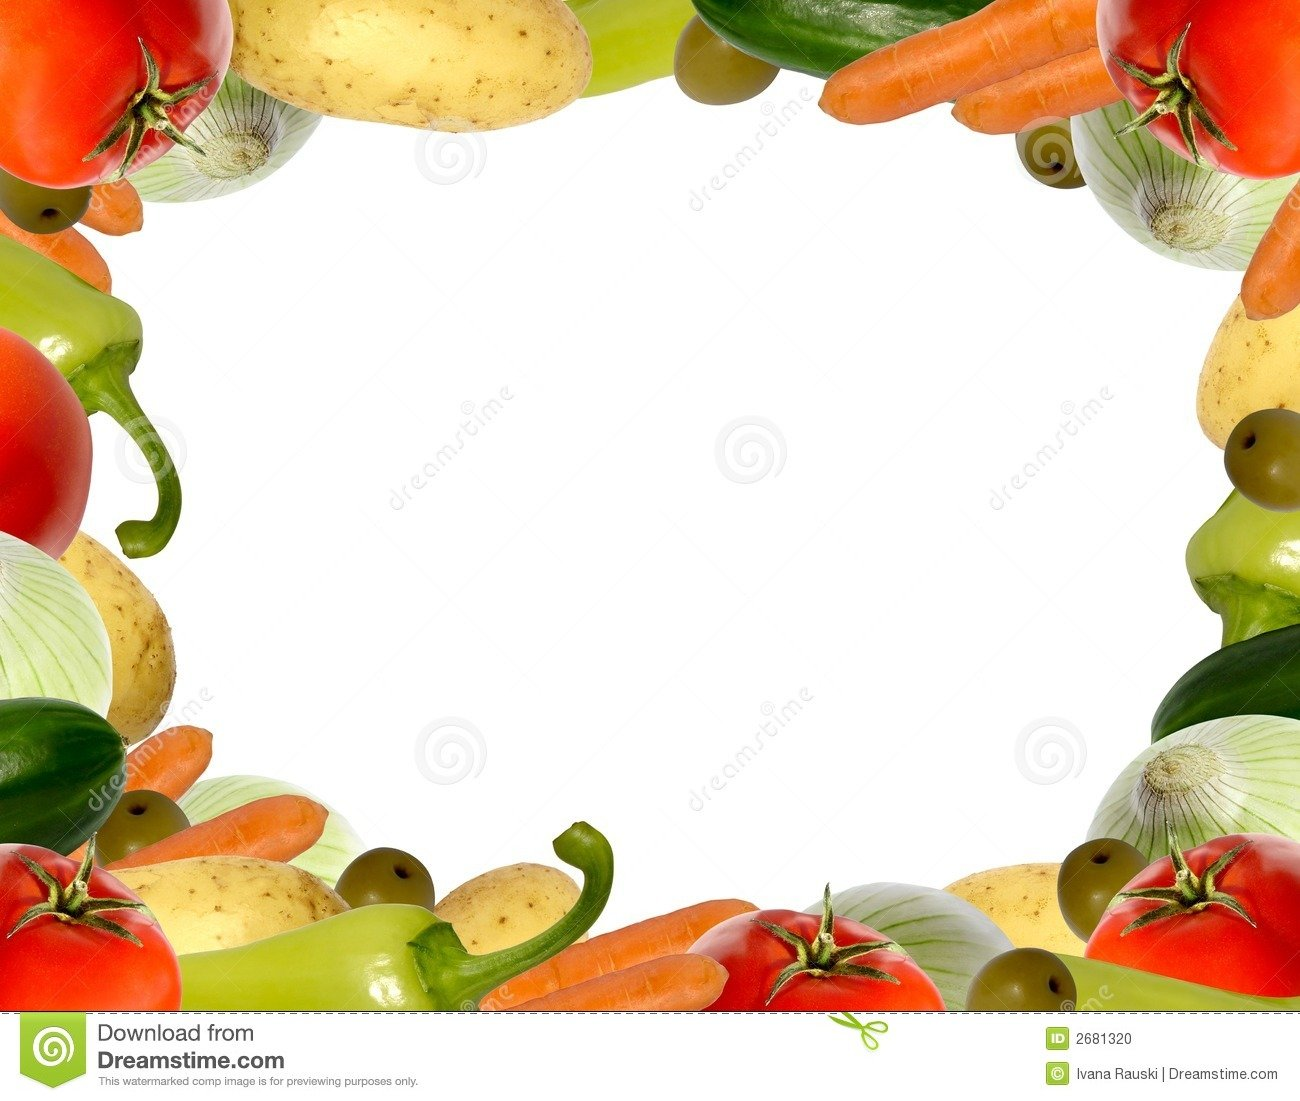 Vegetable Wallpaper Border HD Wallpapers on picsfaircom 1300x1101